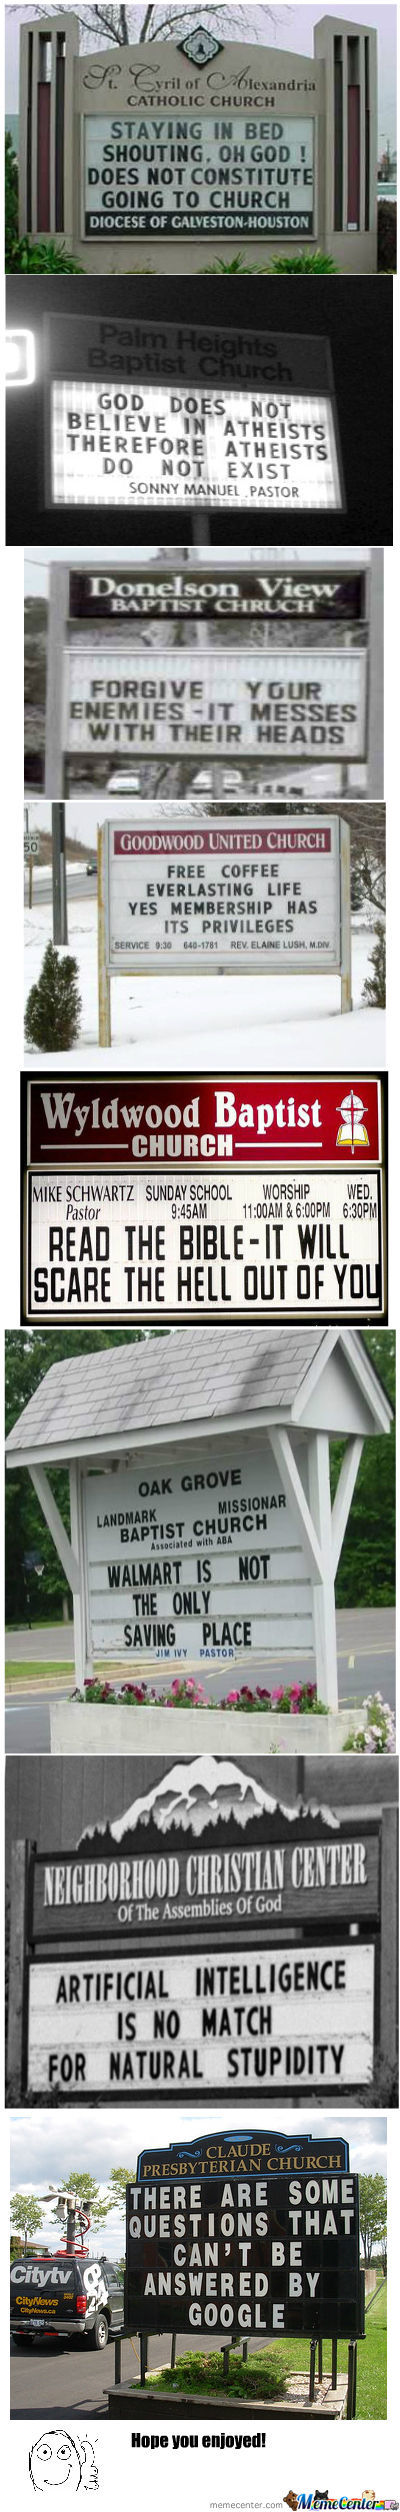 Church Signs Compilation